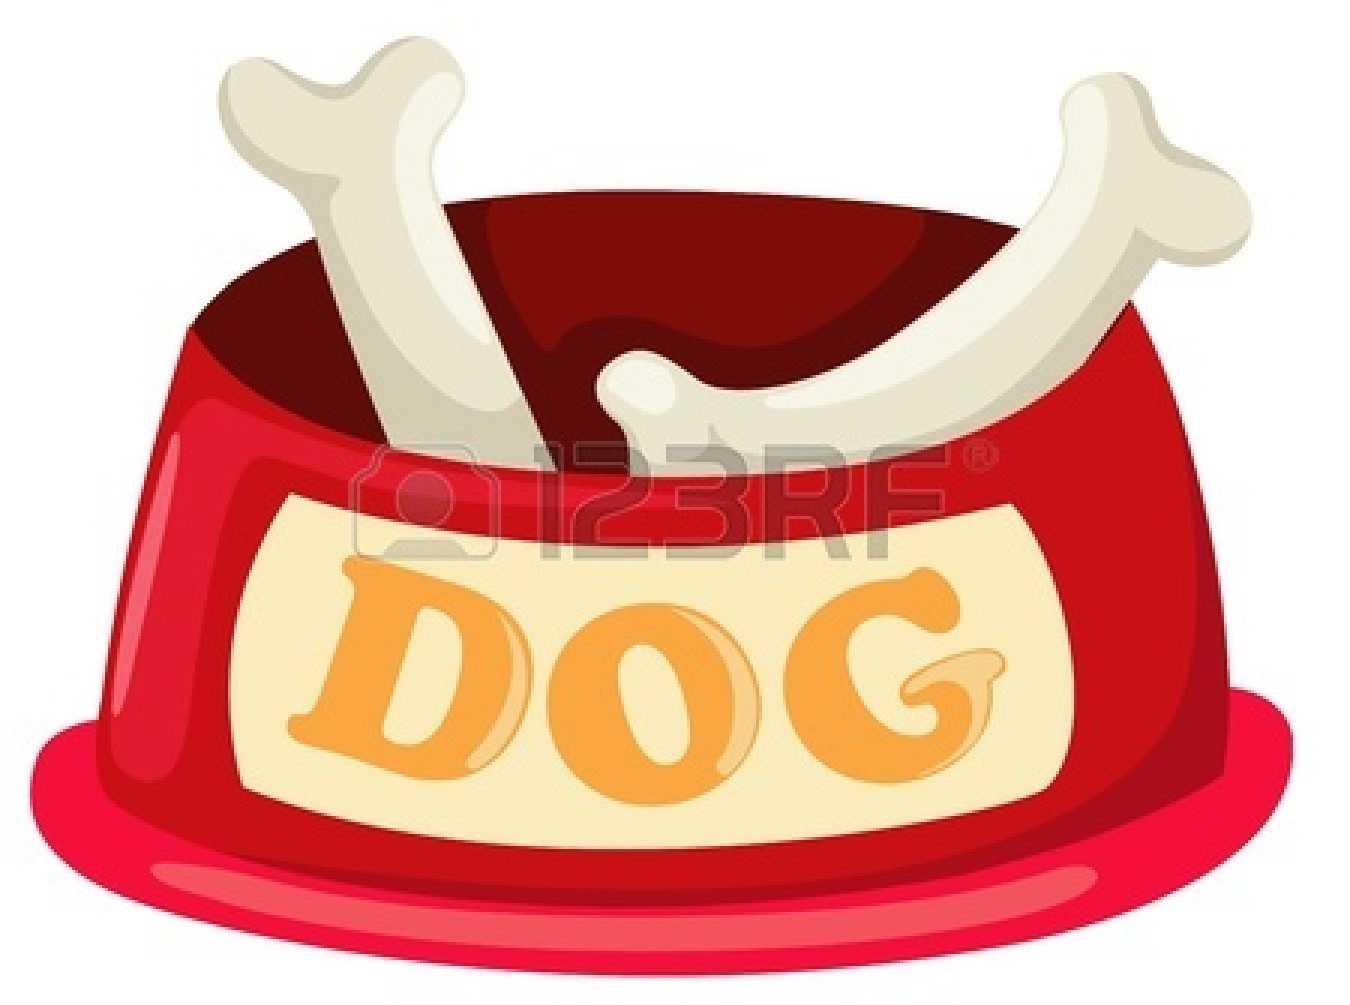 Dog Bowl Clipart.